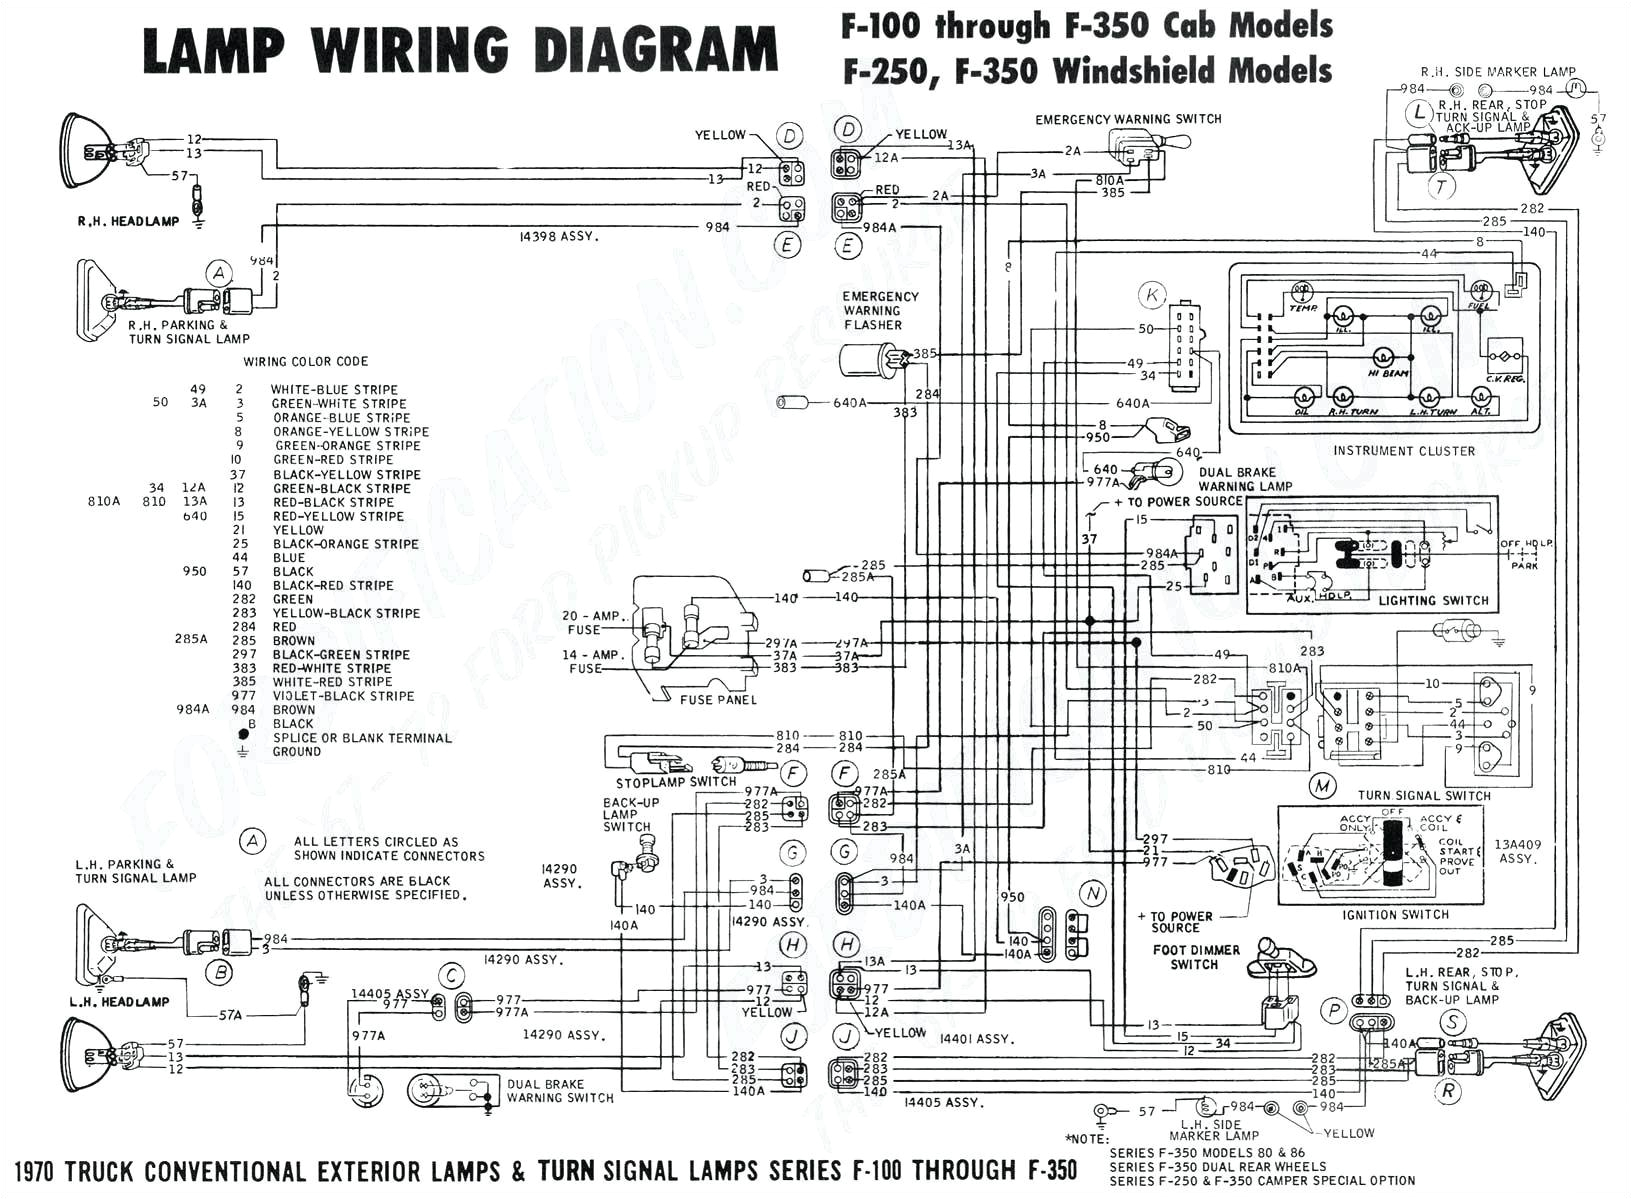 2001 diagrams ford wiring explorer taillinghts wiring diagram toolbox cannondale atv wiring schematic